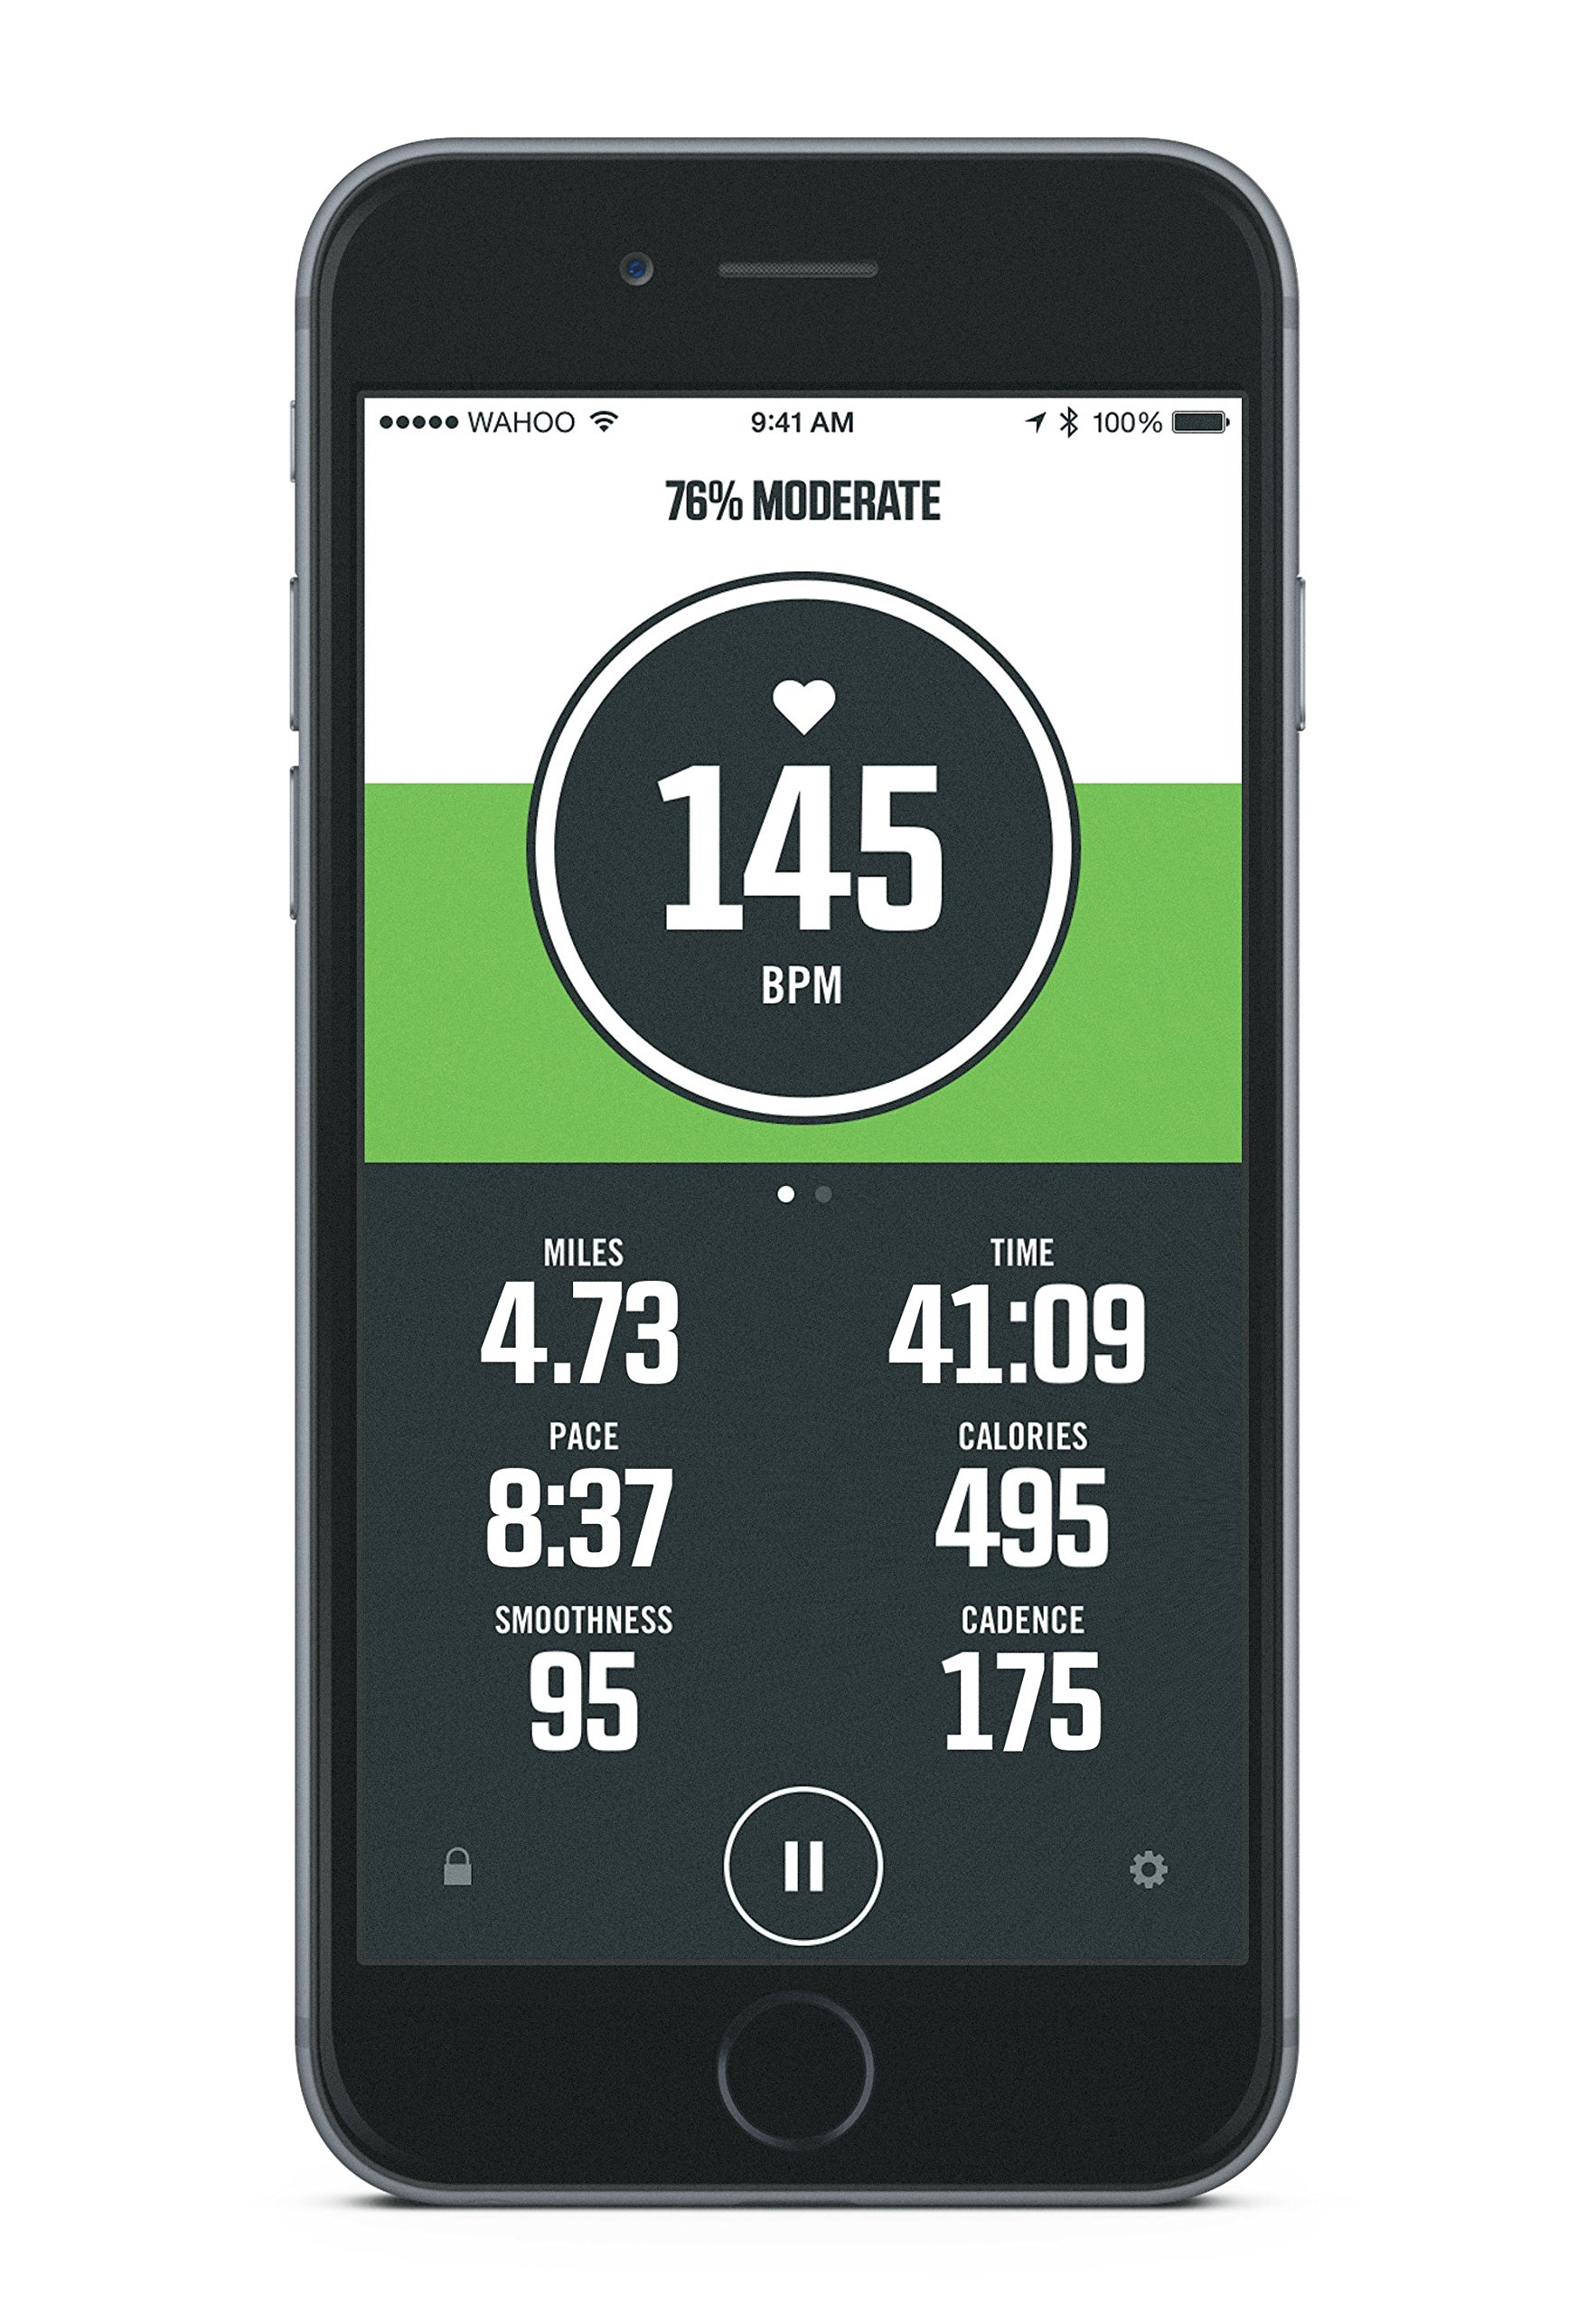 916tyjCCKdL - Wahoo TICKR Heart Rate Monitor, Bluetooth / ANT+